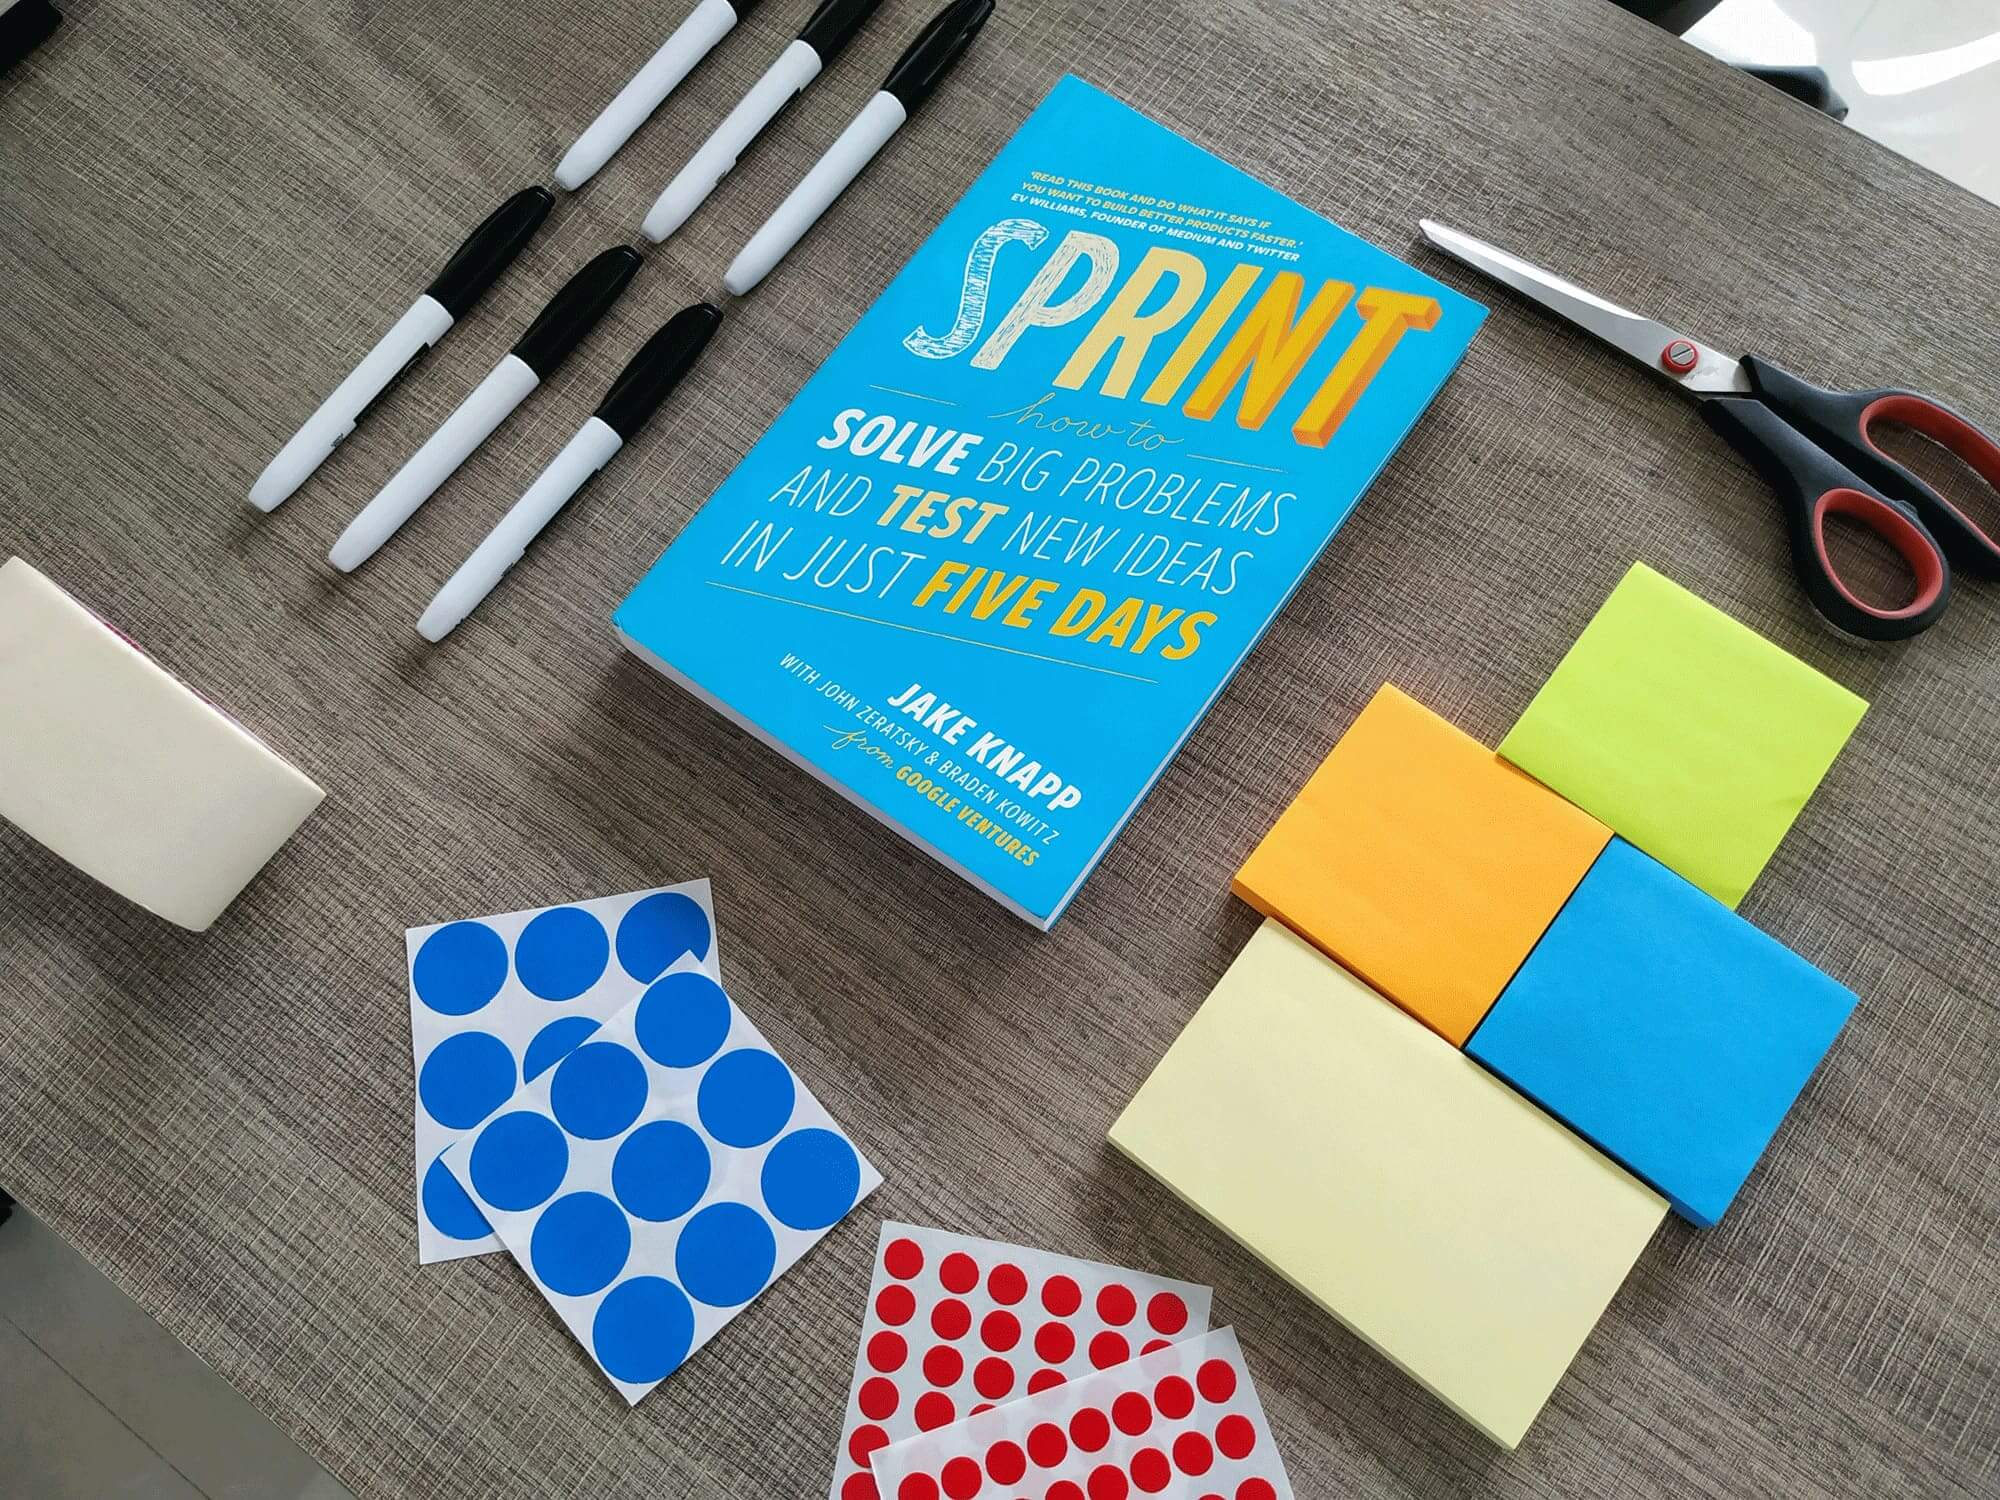 design sprint, core workshop and discovery workshop can help you enter new markets, design new products, develop new features, design new packaging and much more.